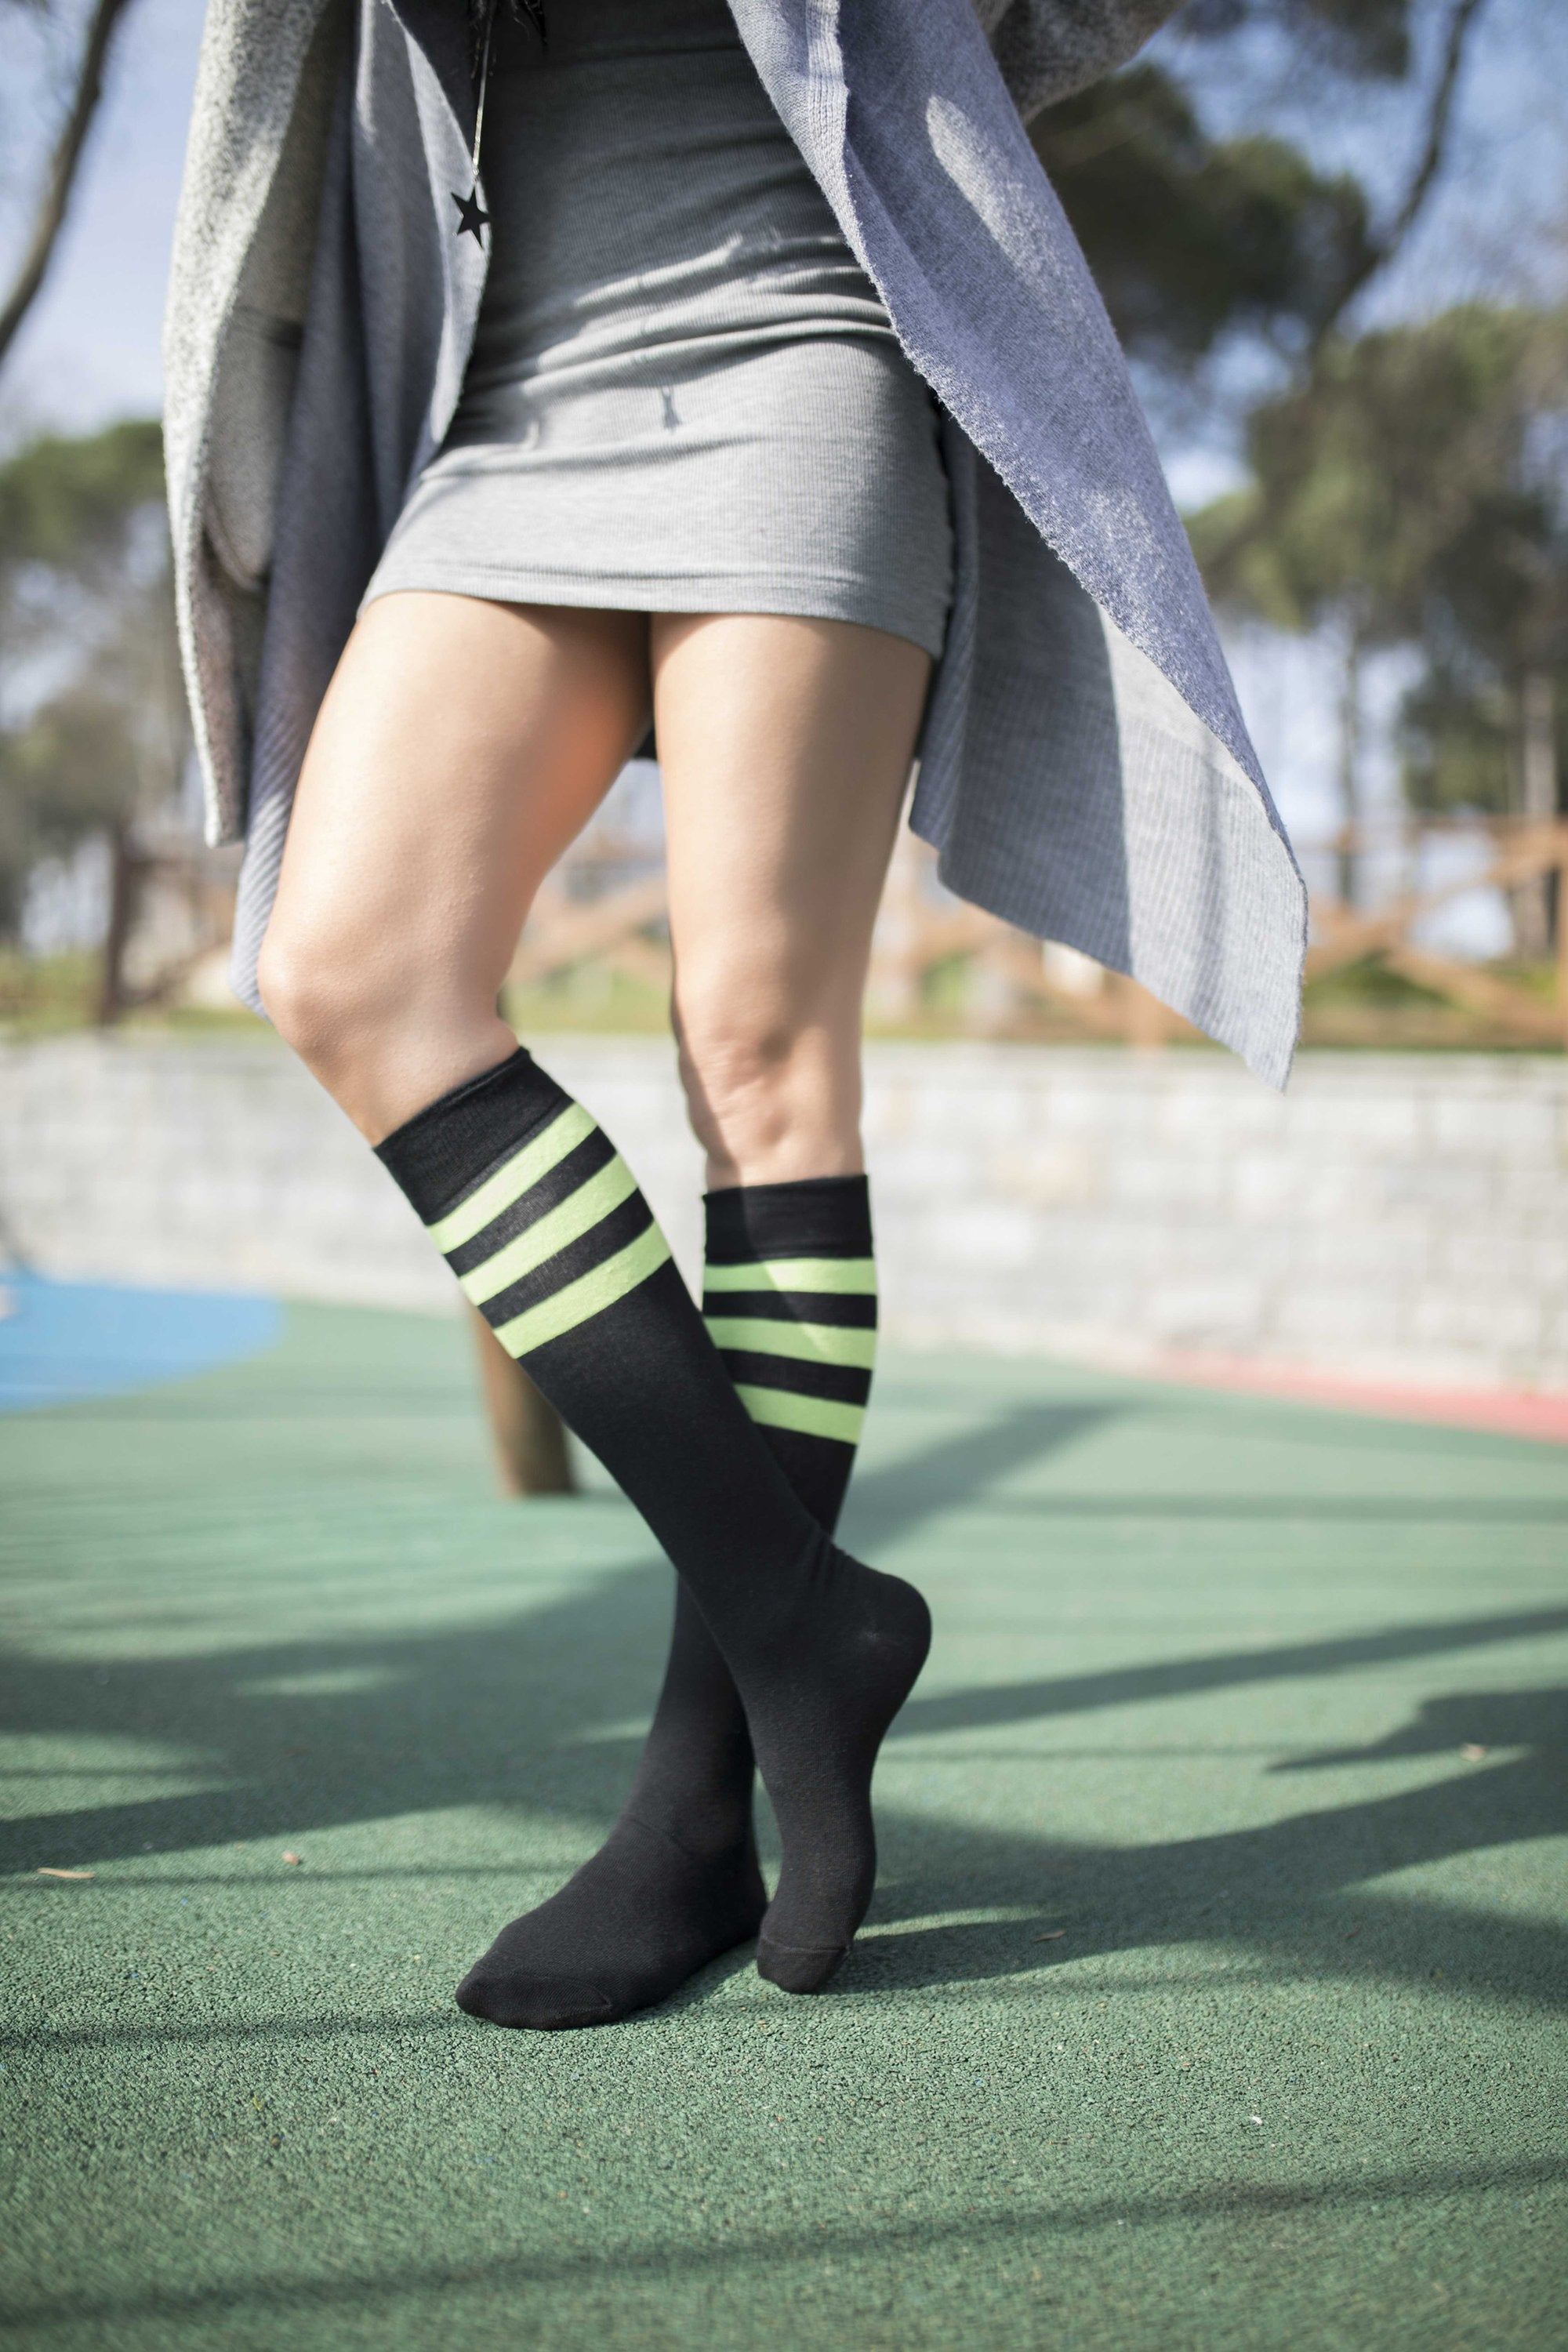 Women's Shiny Dark Stripe Knee High Socks Set